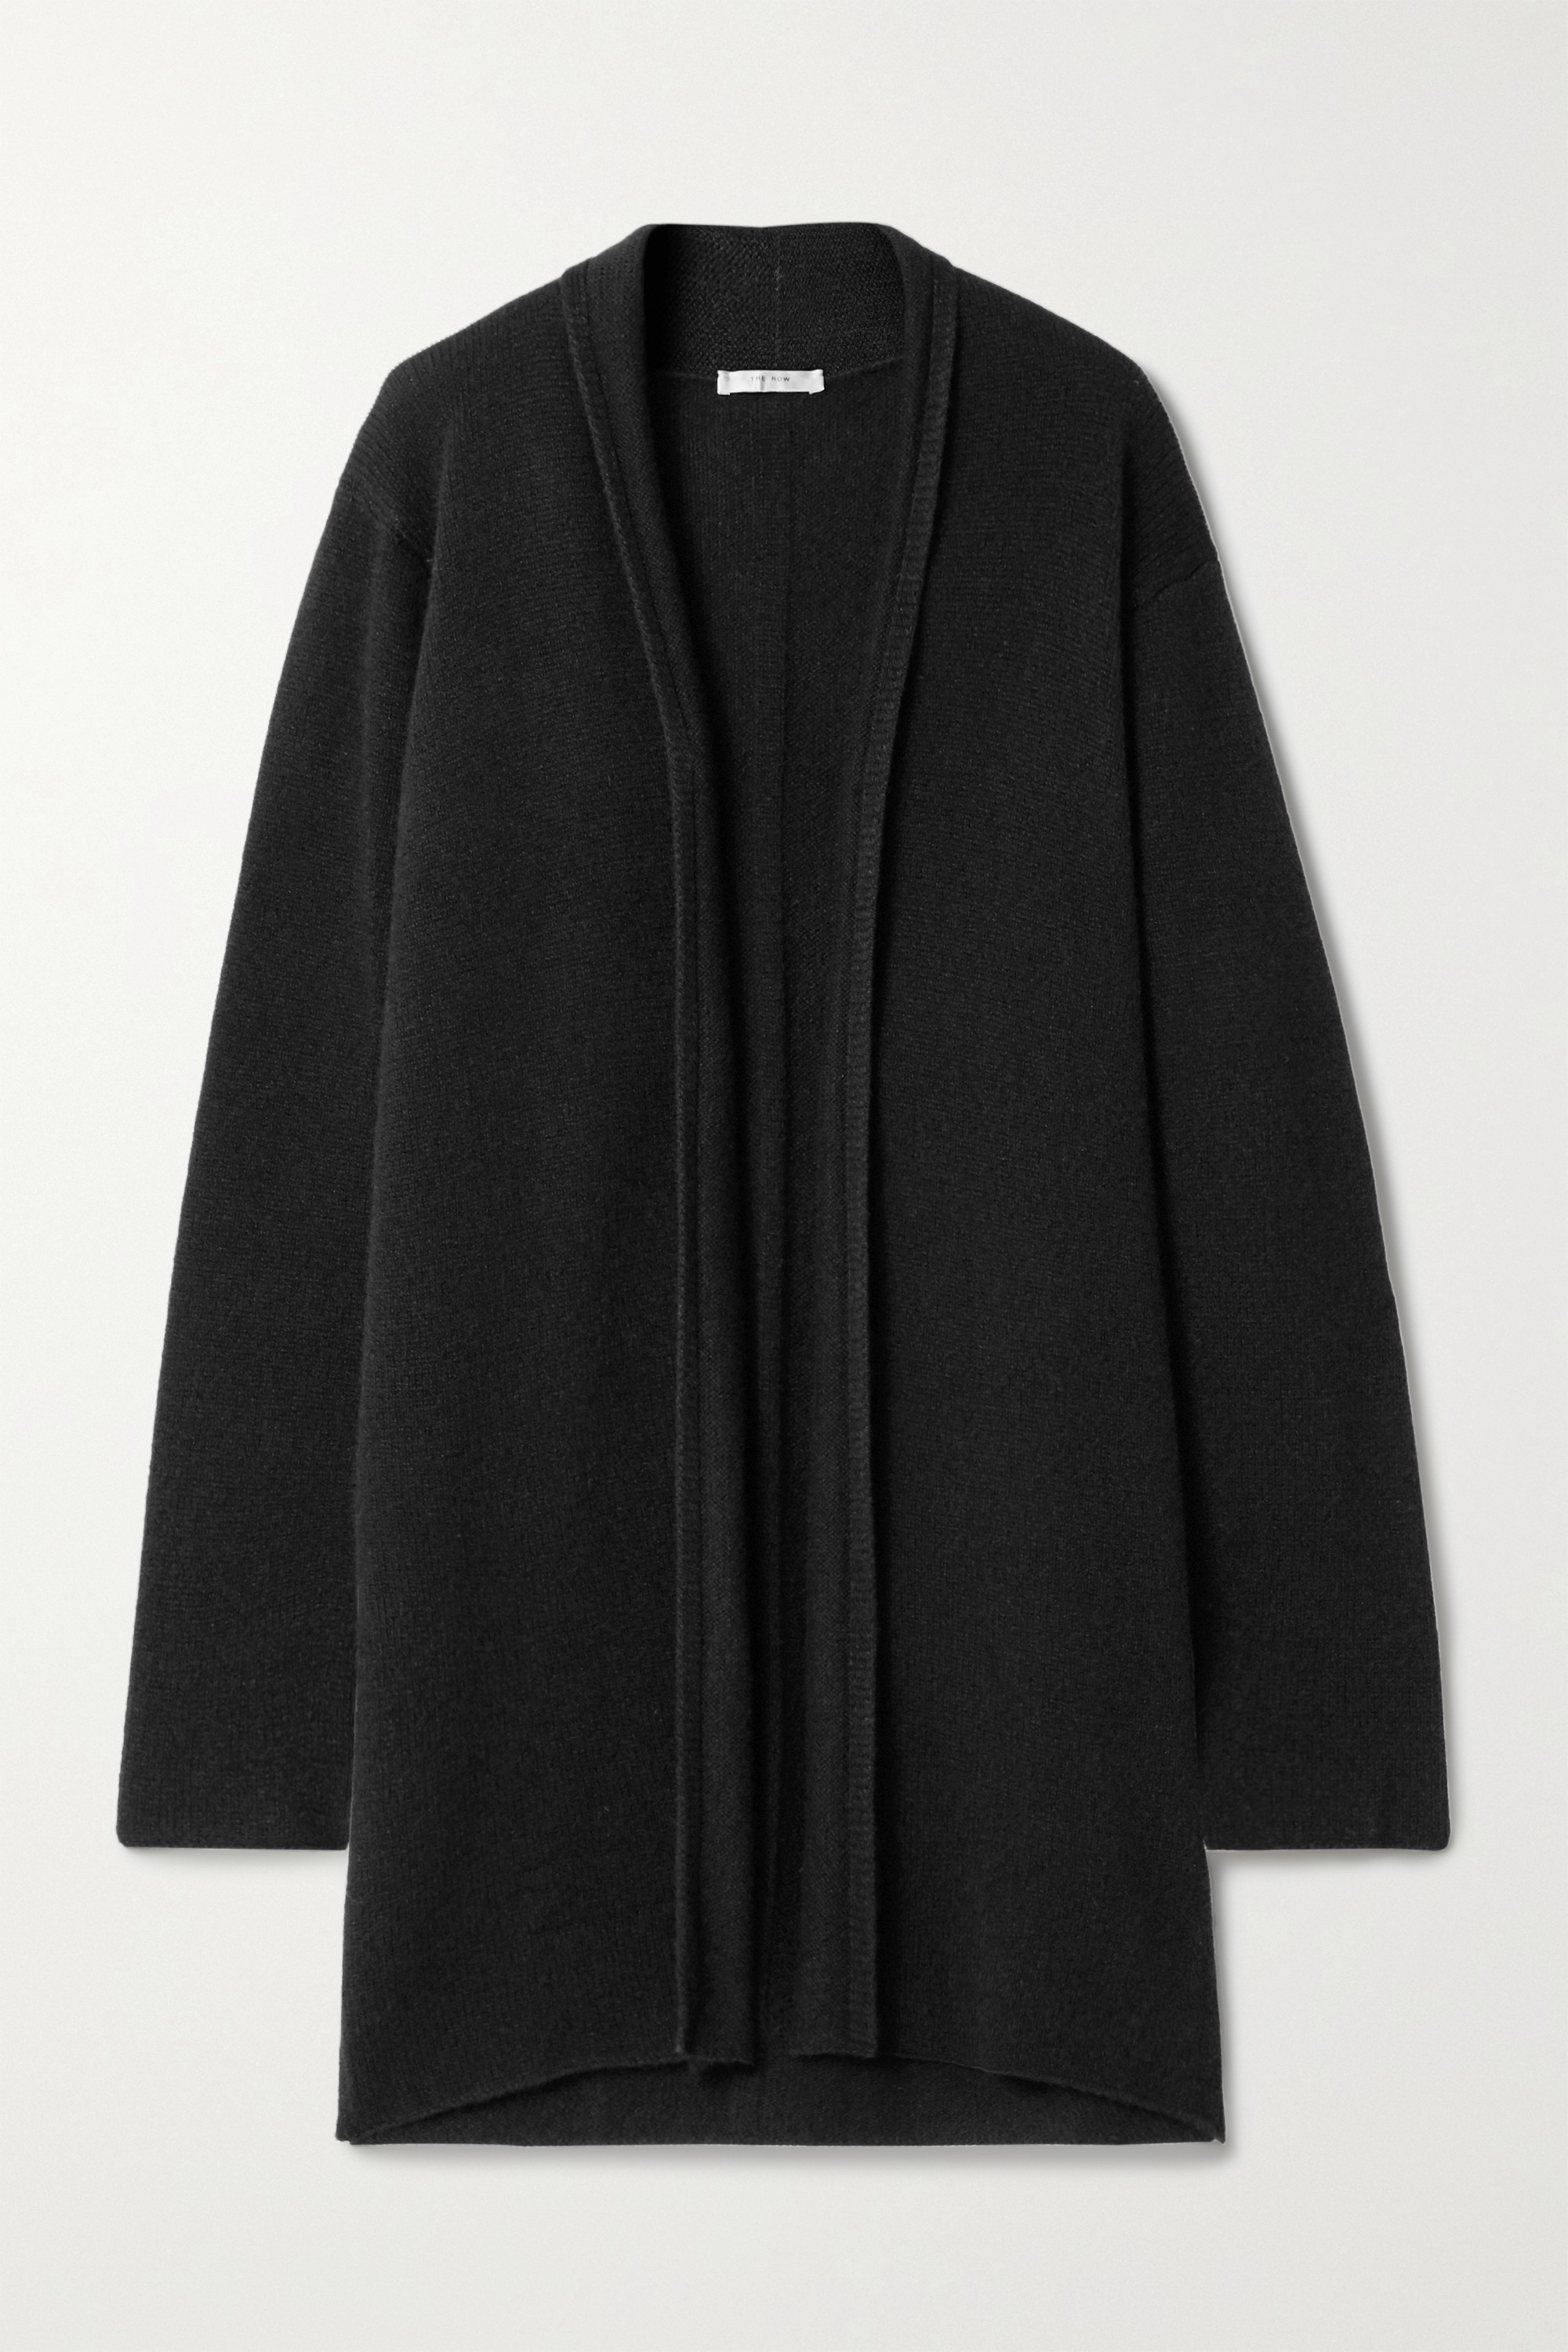 The Row - Fulham cashmere cardigan